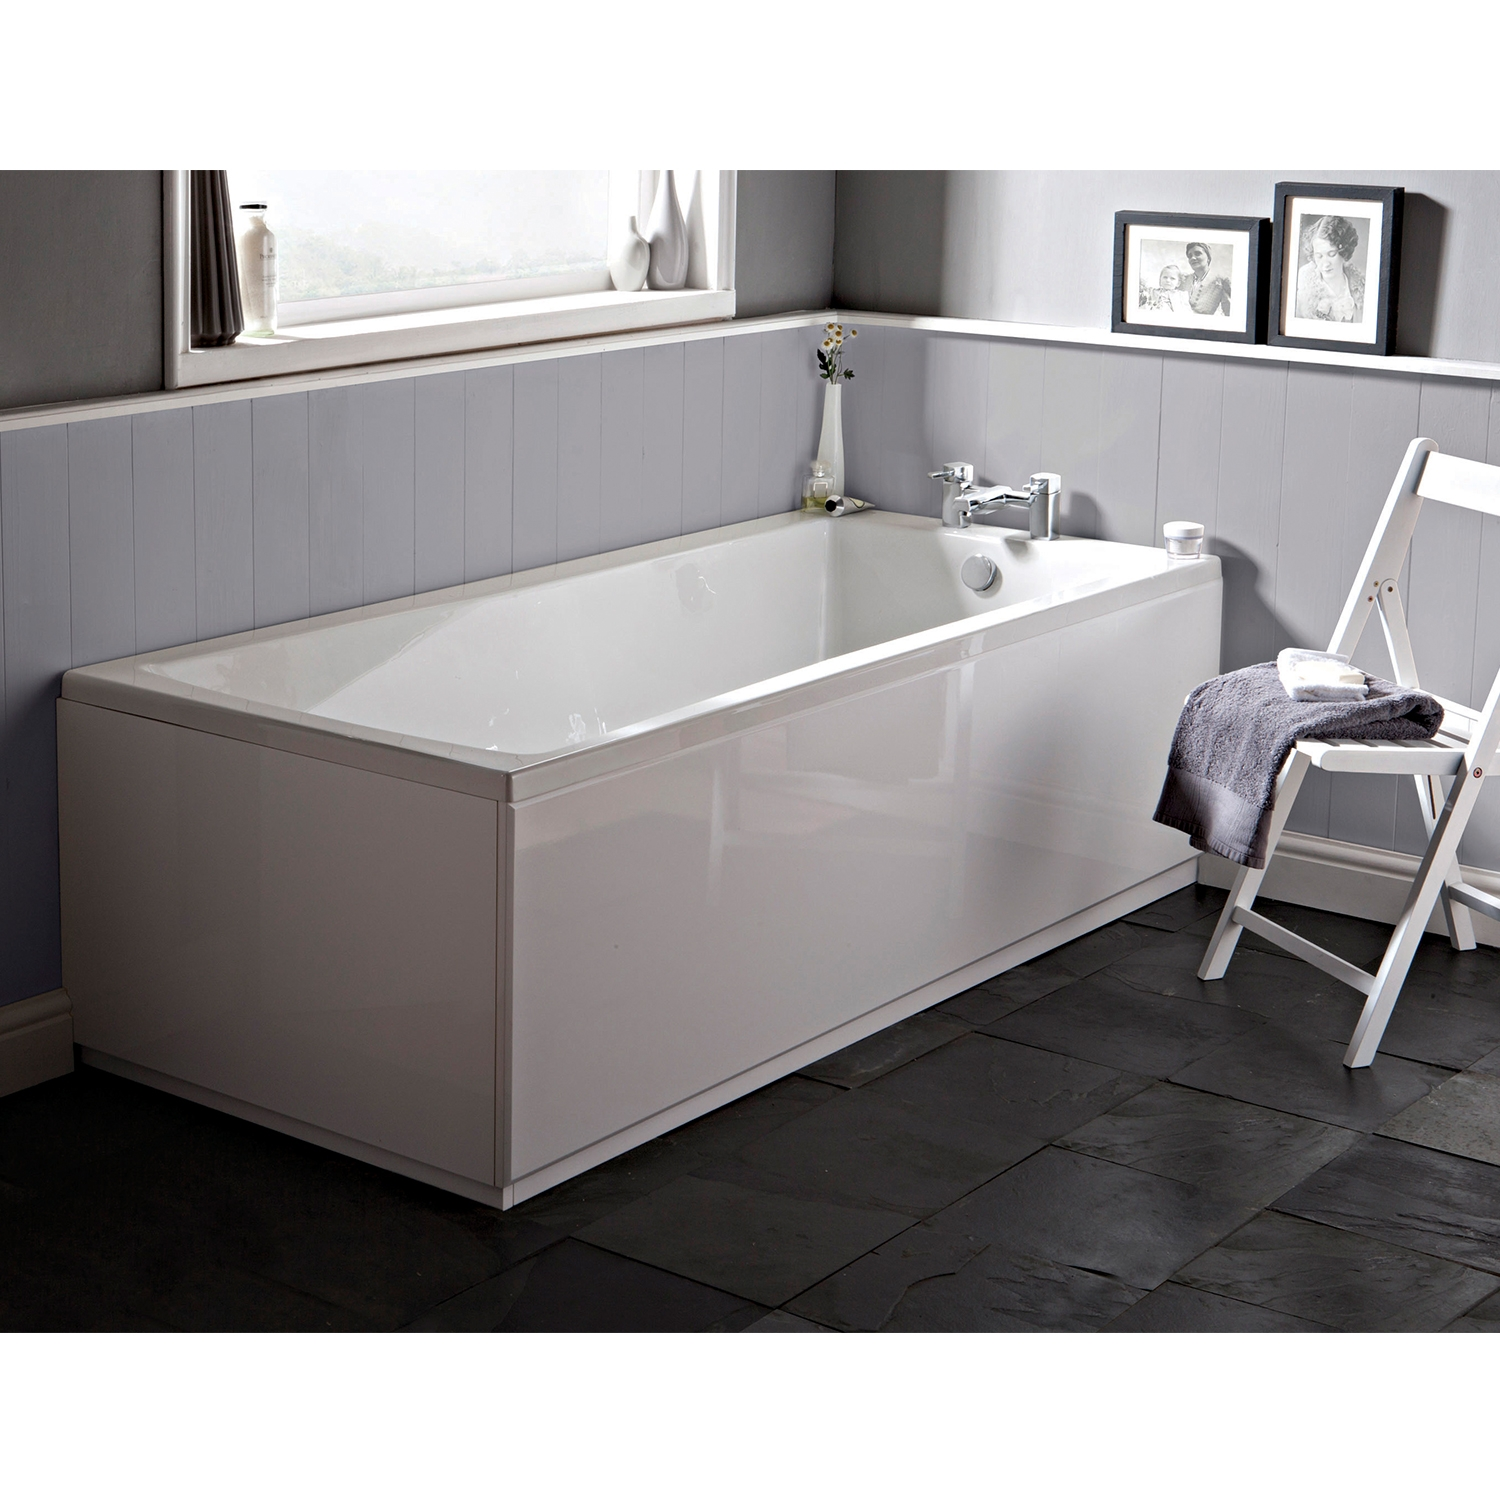 Hudson Reed Linton Single Ended Rectangular Bath 1700mm x 700mm - Eternalite